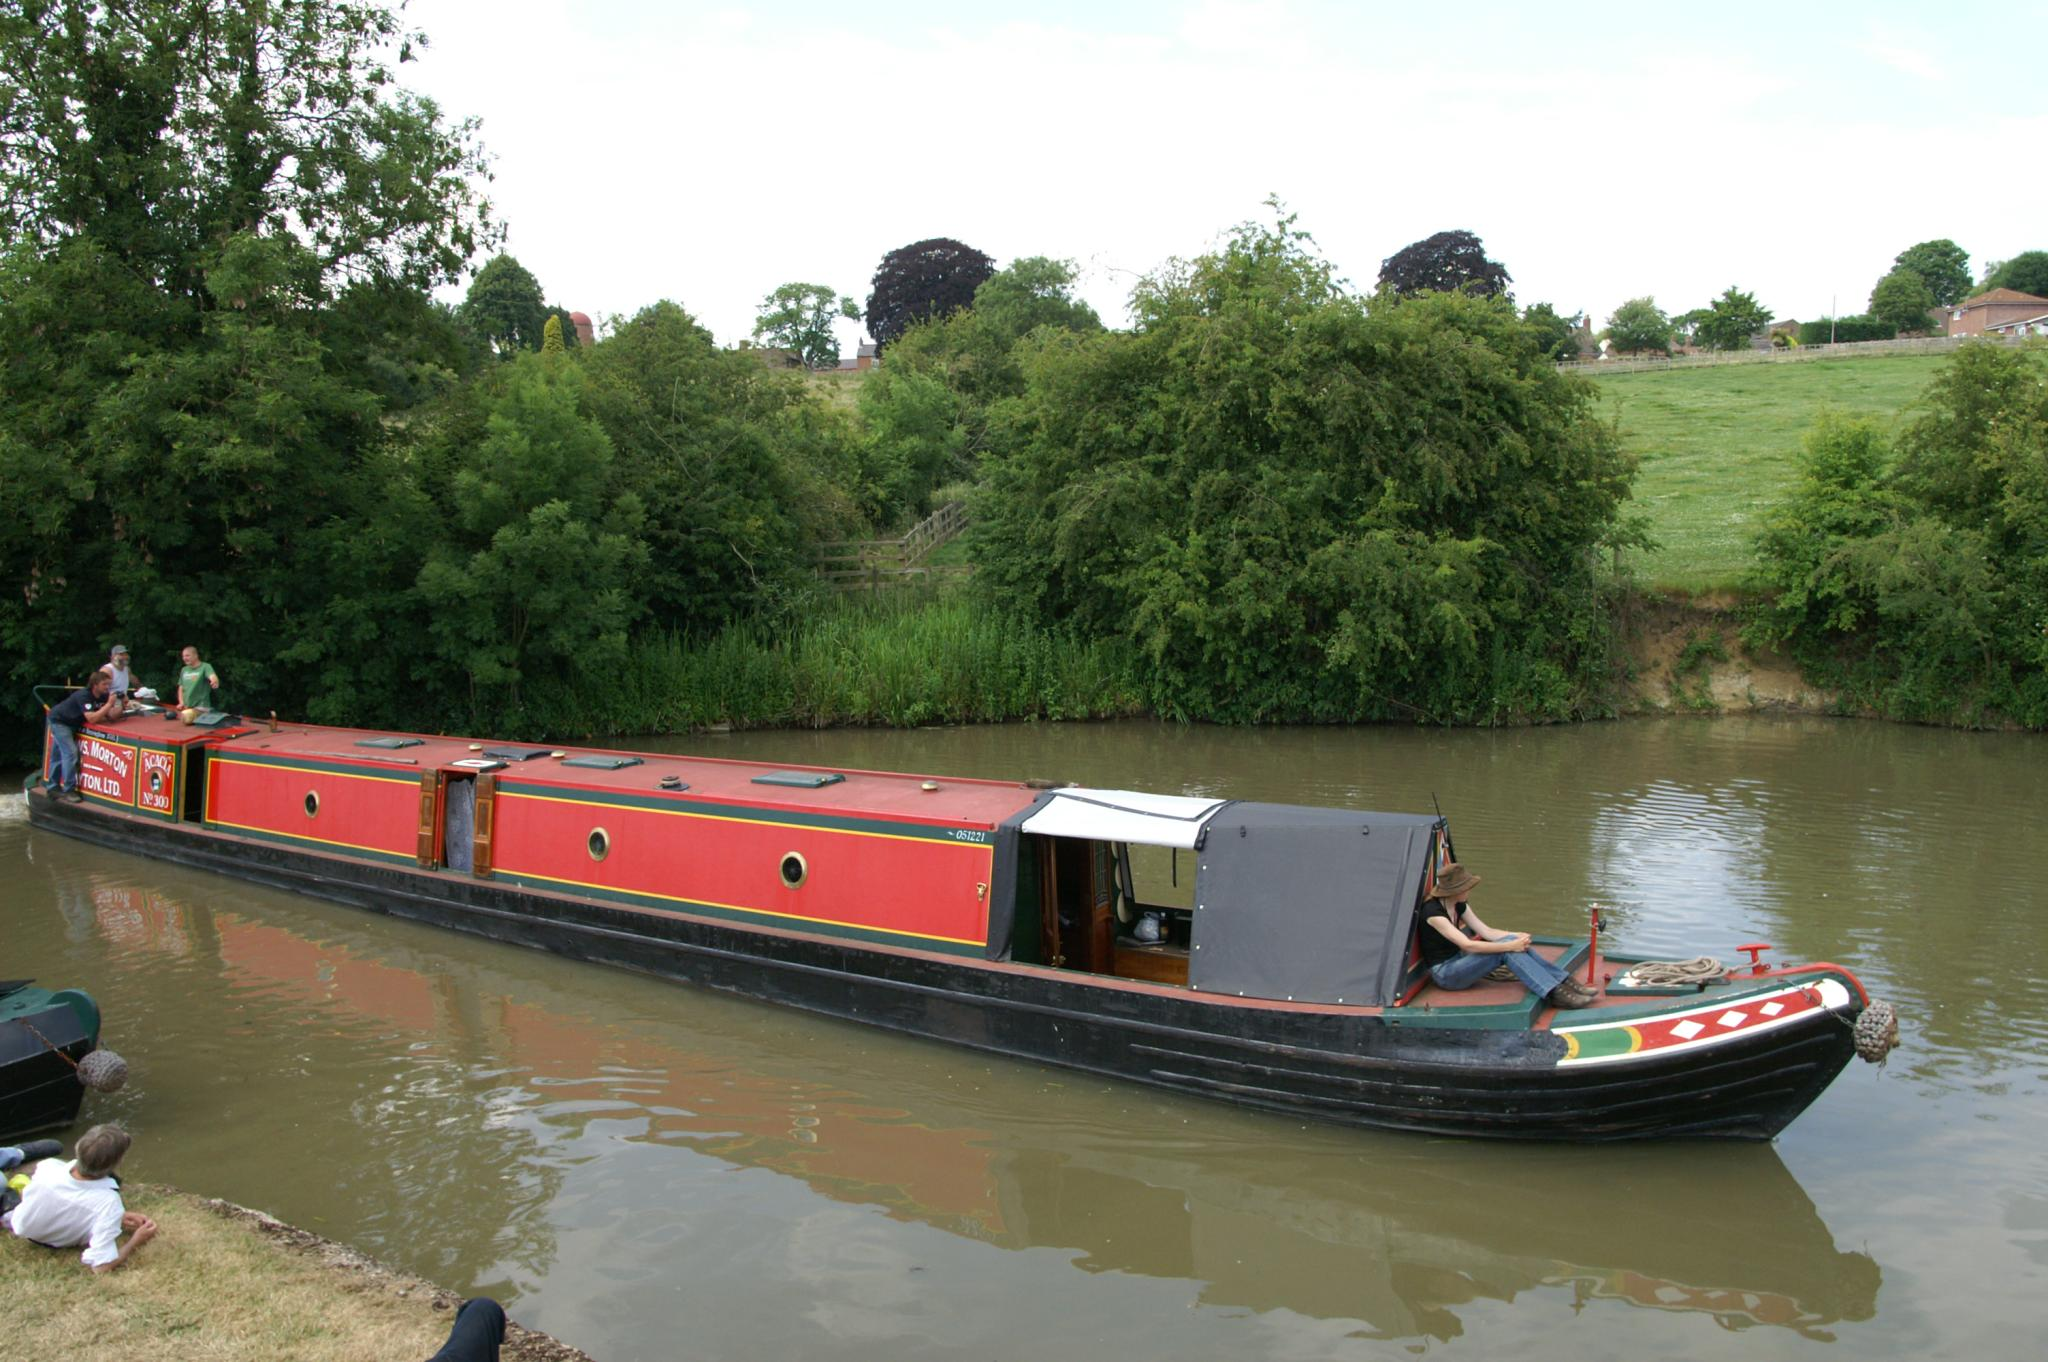 narrowboat dating uk Quality 60 foot josher style narrowboat by mike christian of tim tyler boatbuilders 2018 newly commissioned, this boat is out of the water (easy to have a survey) this boat is currently at stourport and can be transported to any destination in the uk.